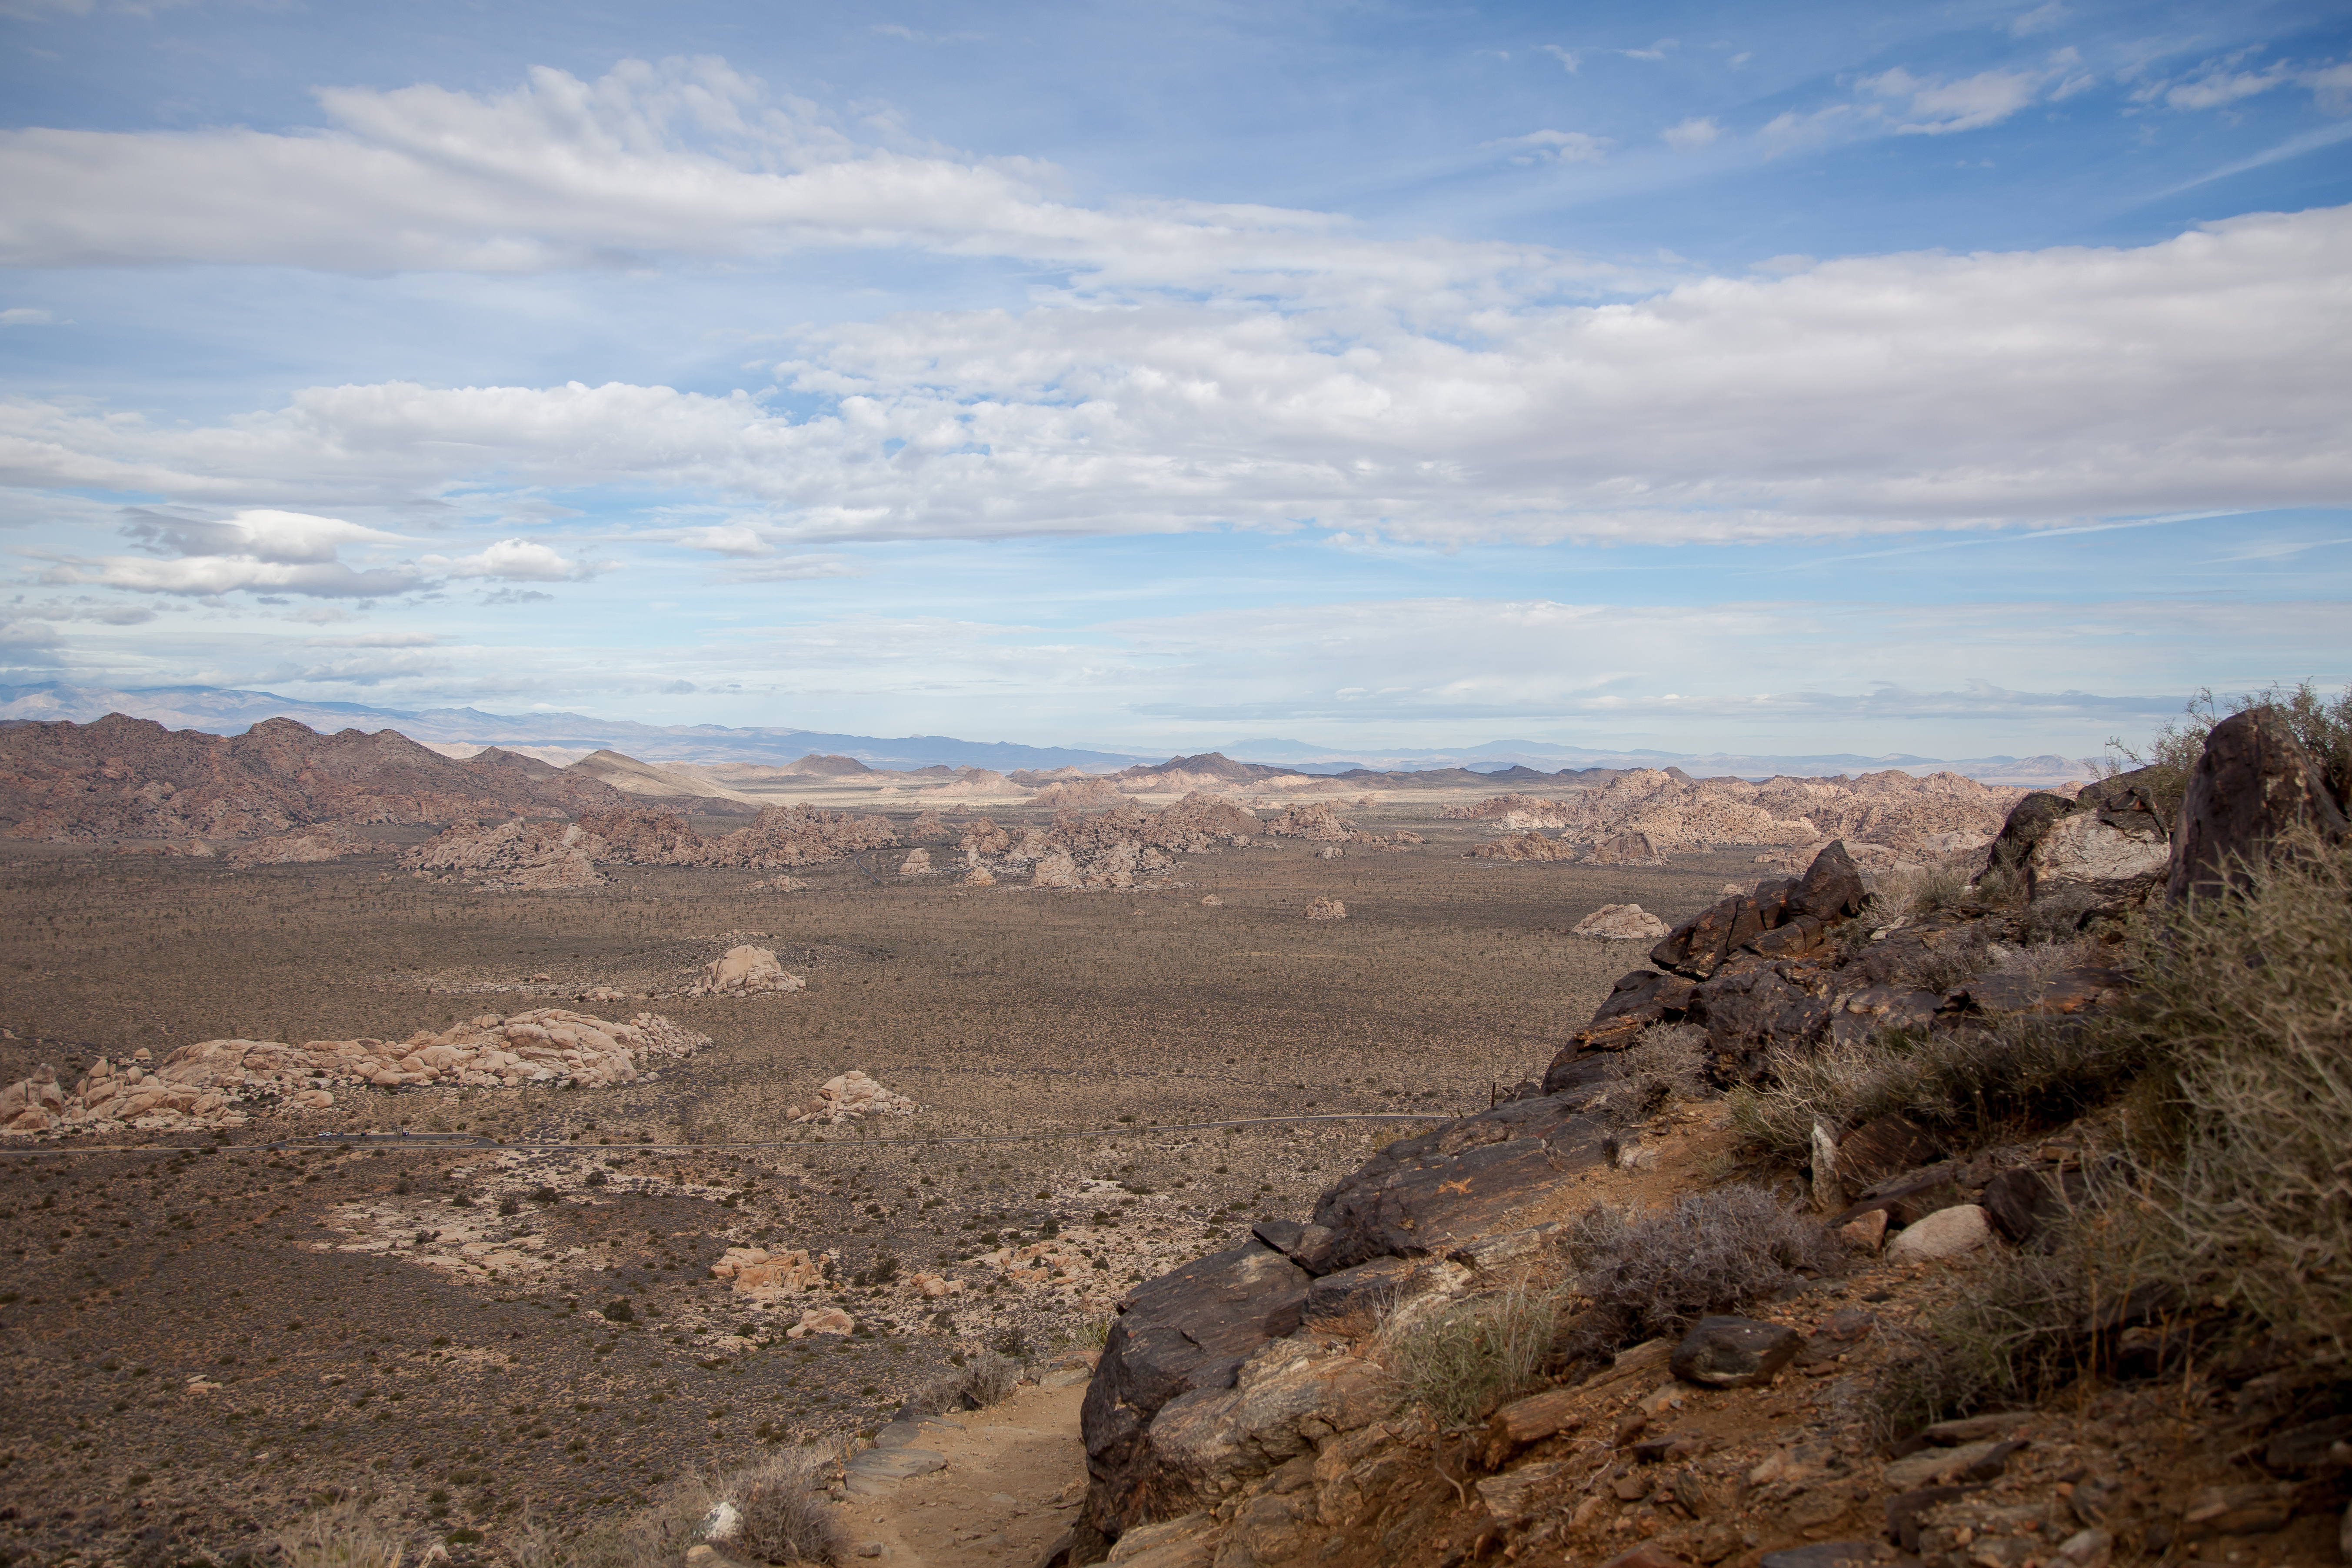 a view of the desert in Joshua Tree National Park